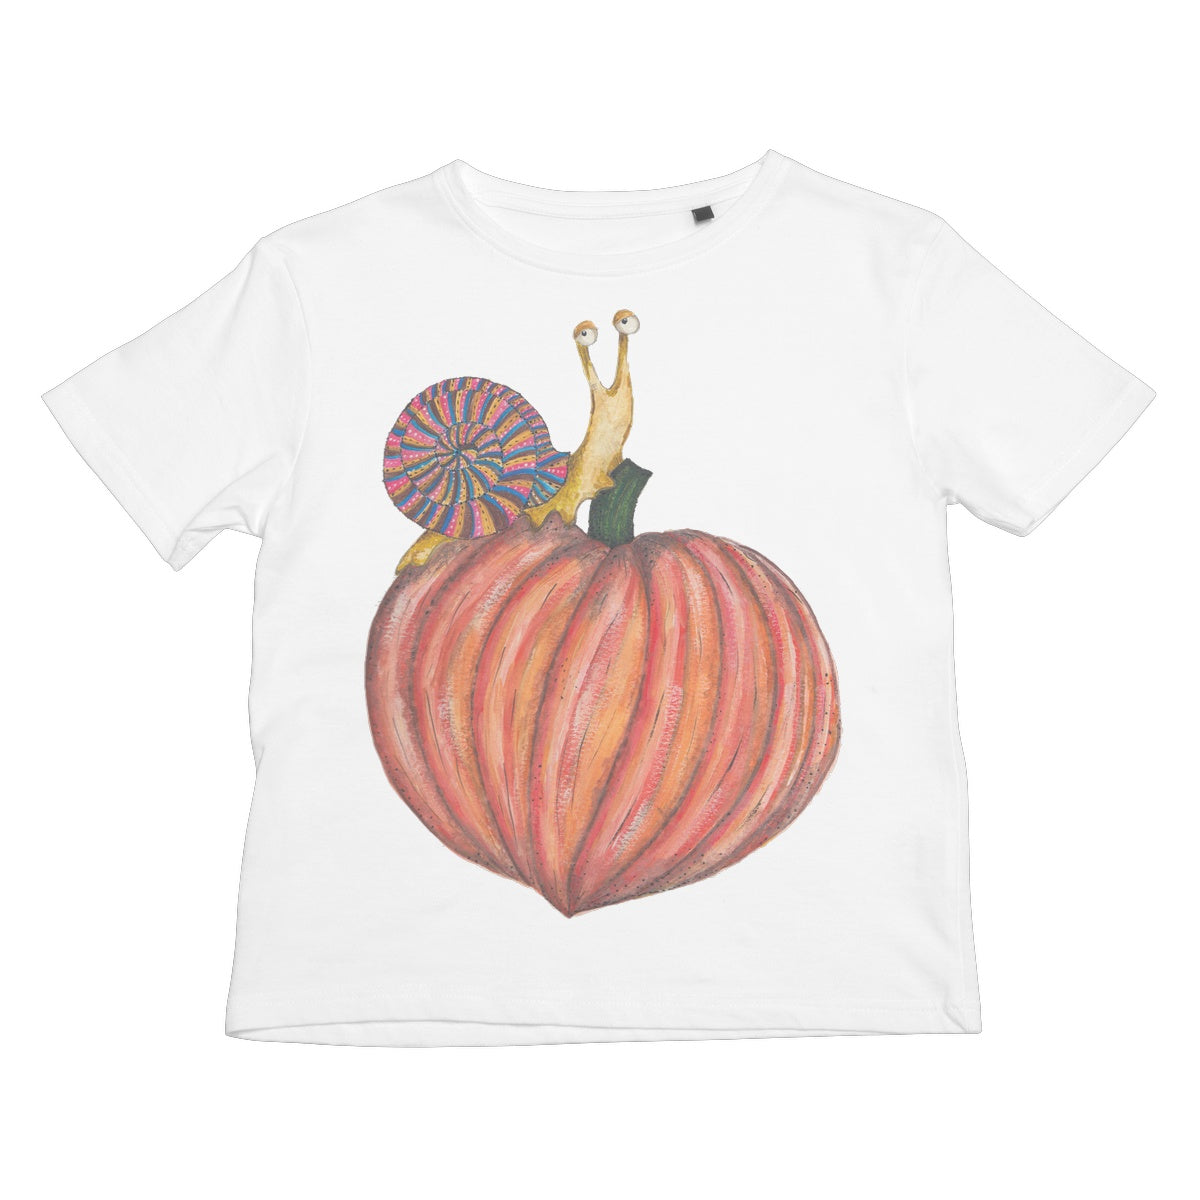 The Snail on Pumpkin Children's Tee